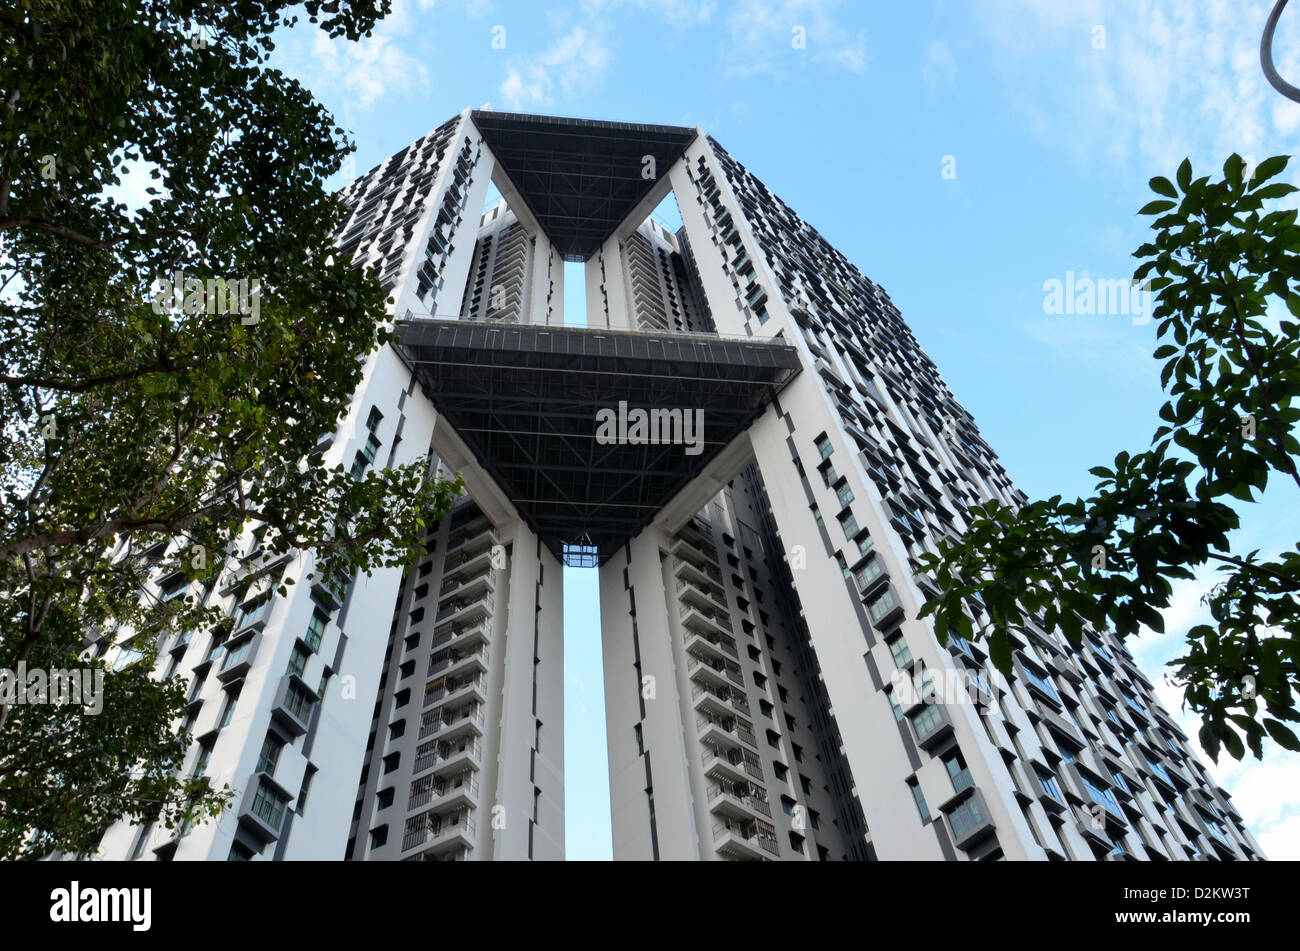 An imposing view of a modern high rise apartment building in Singapore. Note the protruding balconies at intermediate - Stock Image